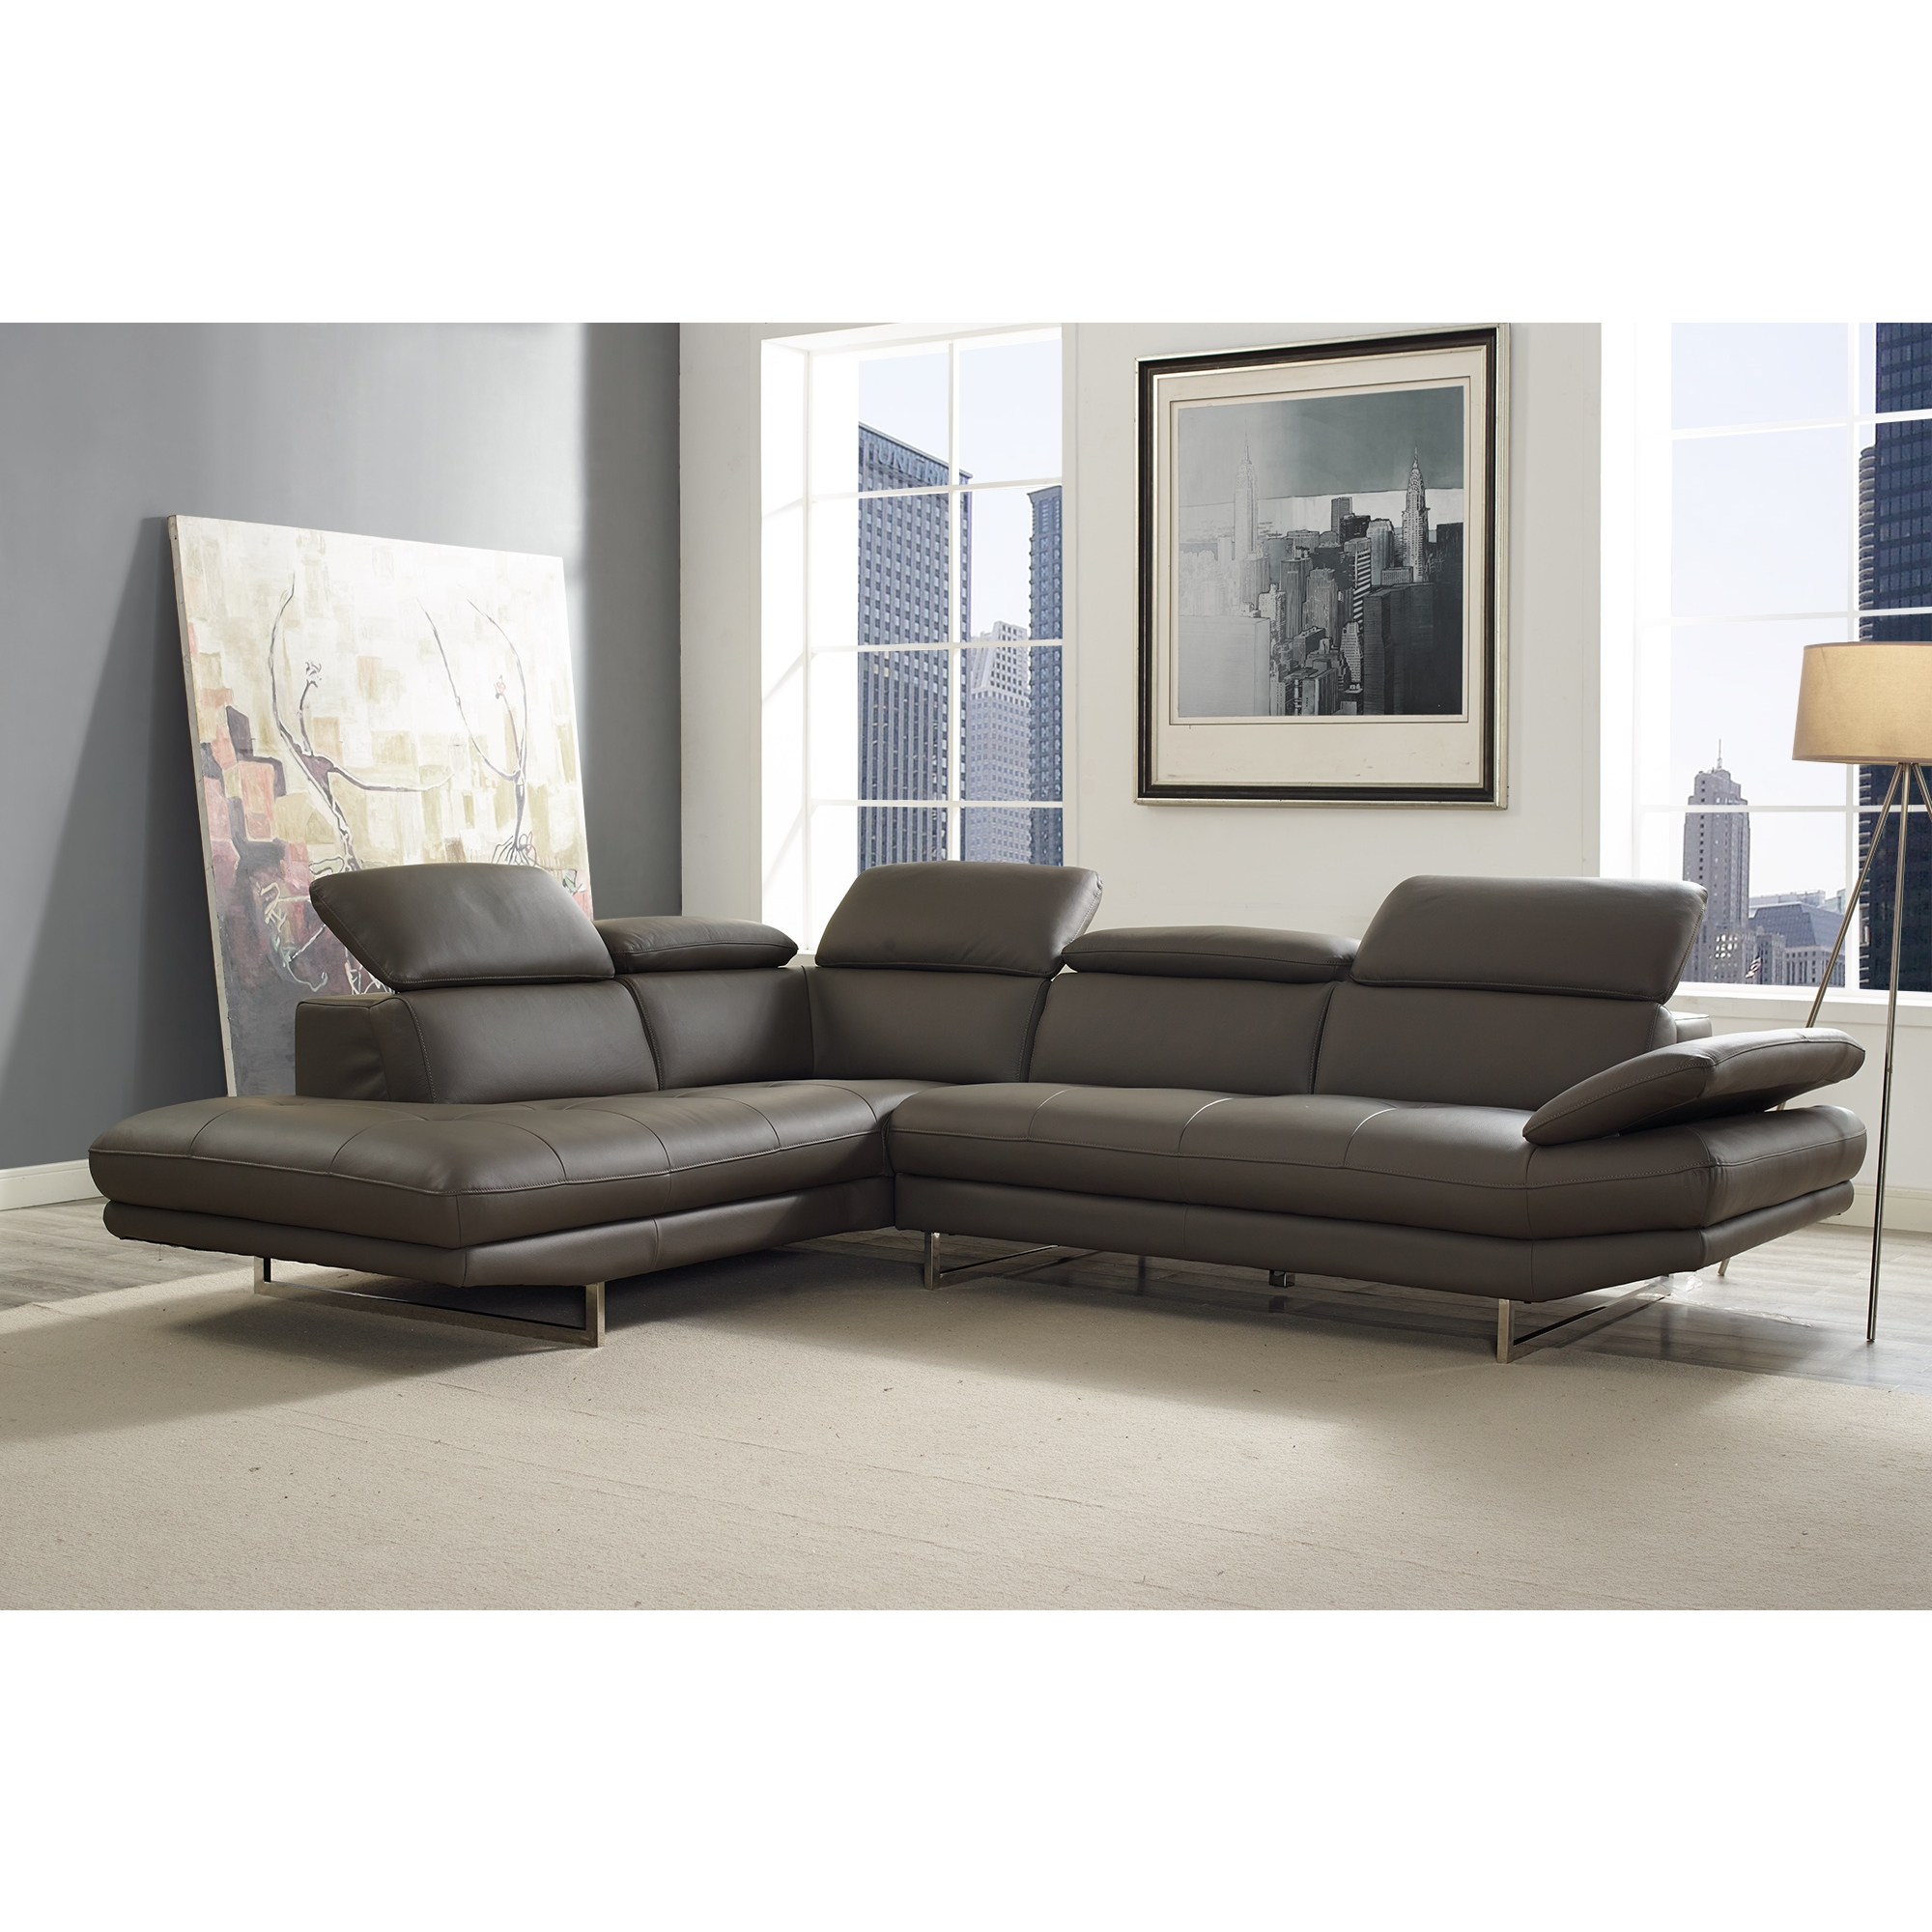 Whiteline Imports SL1351L DGRY Pandora Sectional Sofa w Chaise on